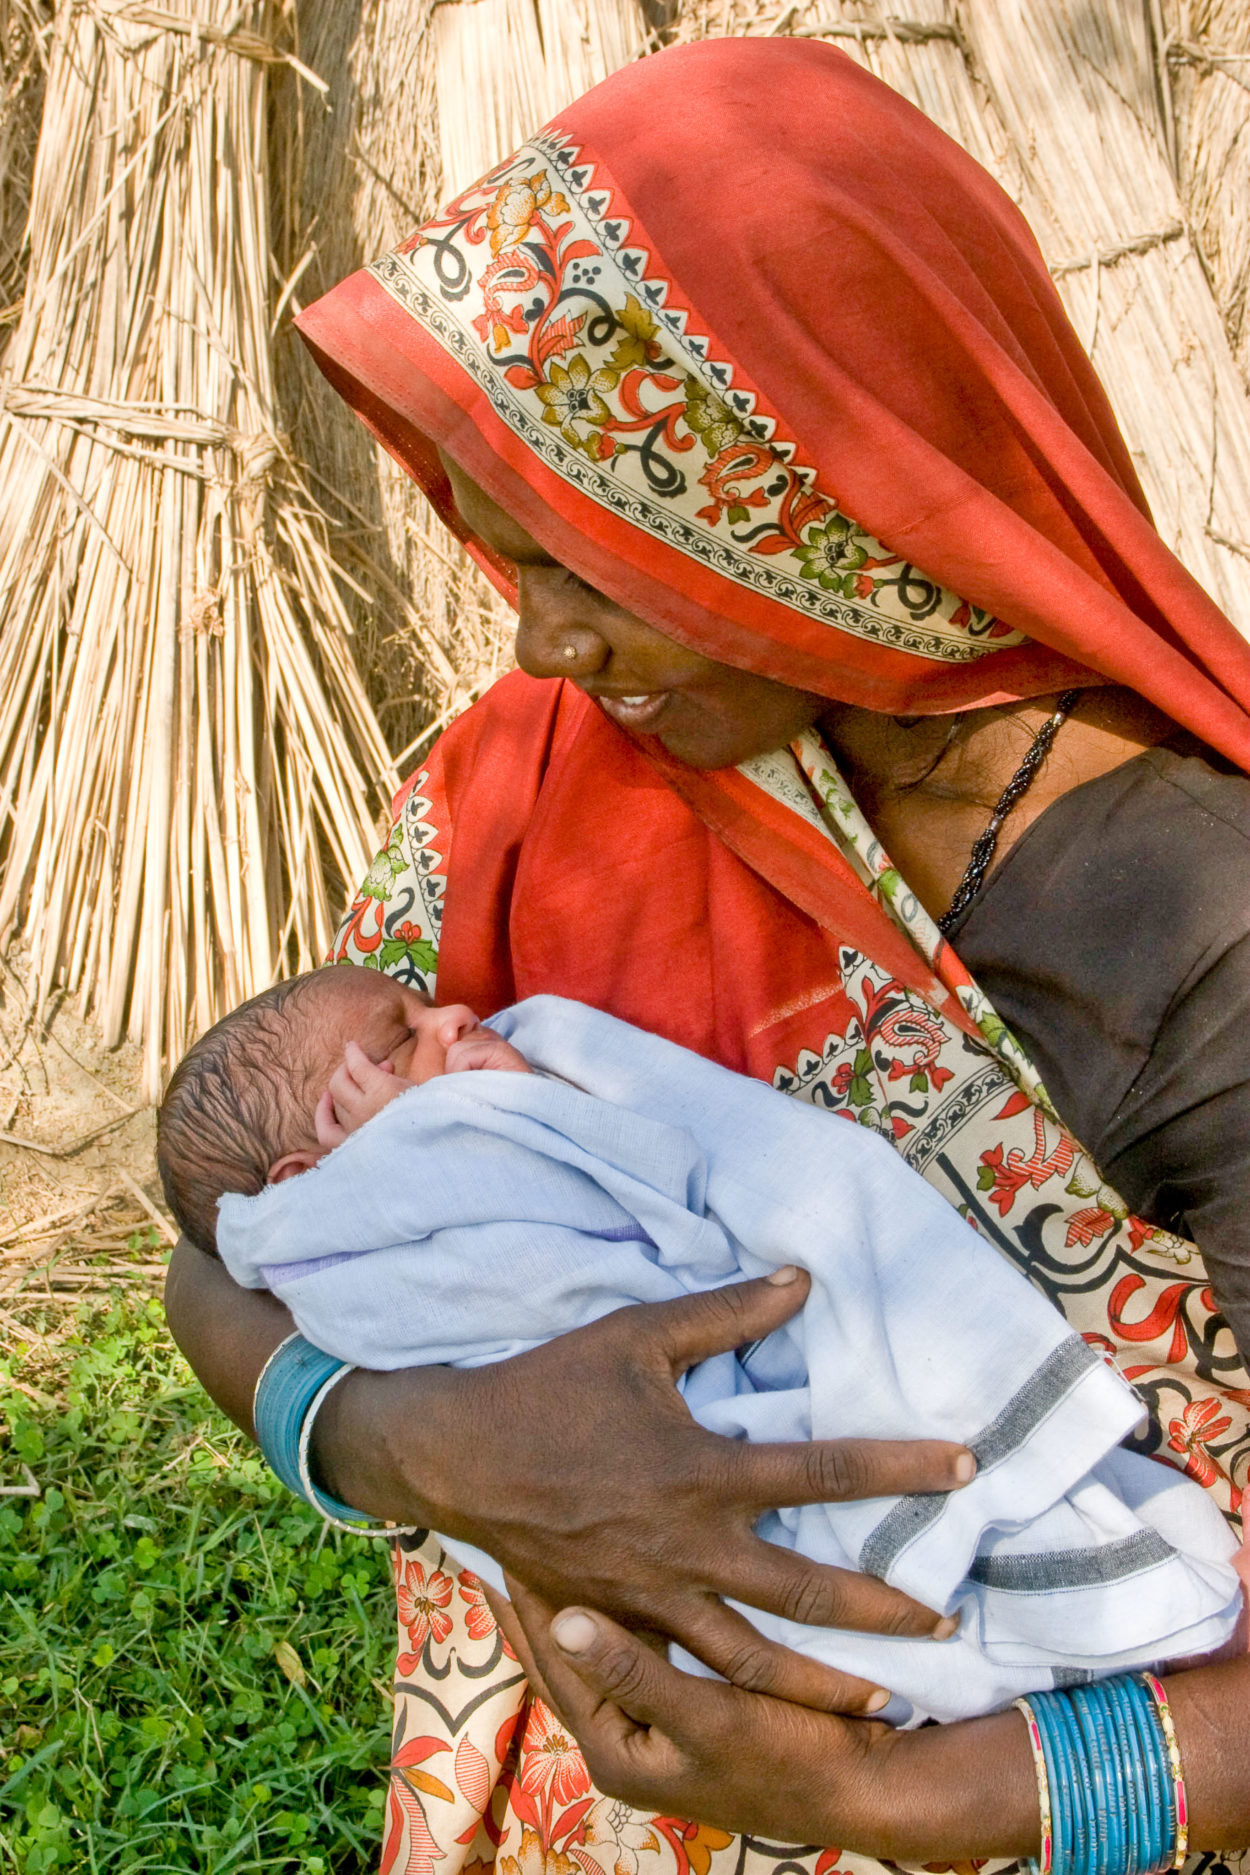 A mother and her newborn in Uttar Pradesh India, Credit: Bill & Melinda Gates Foundation